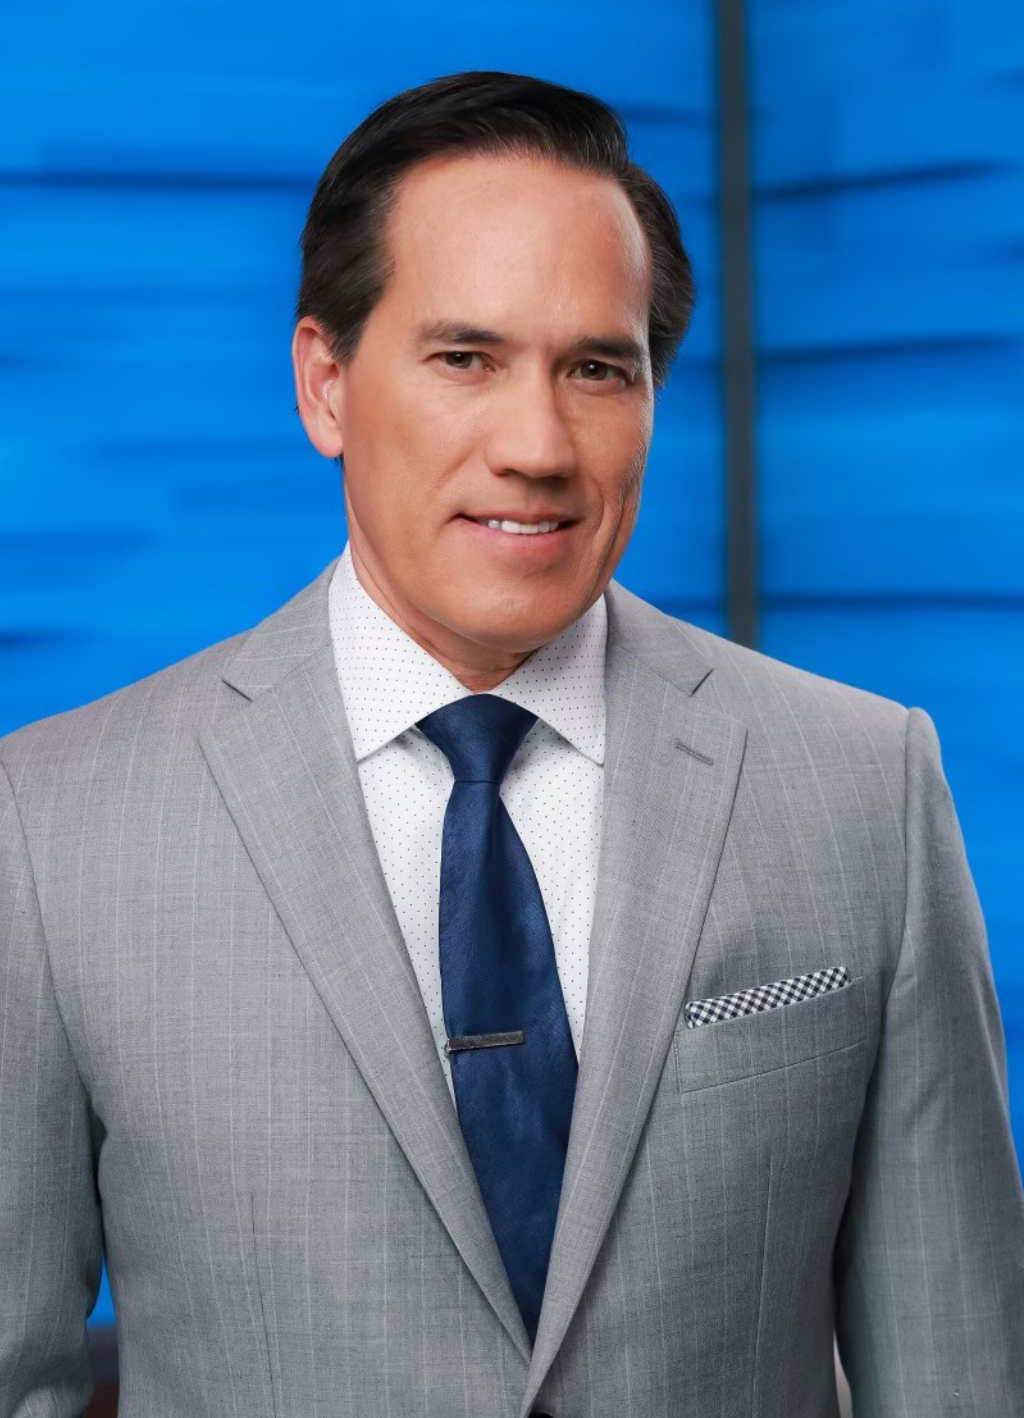 Mike Dubberly, WBRC